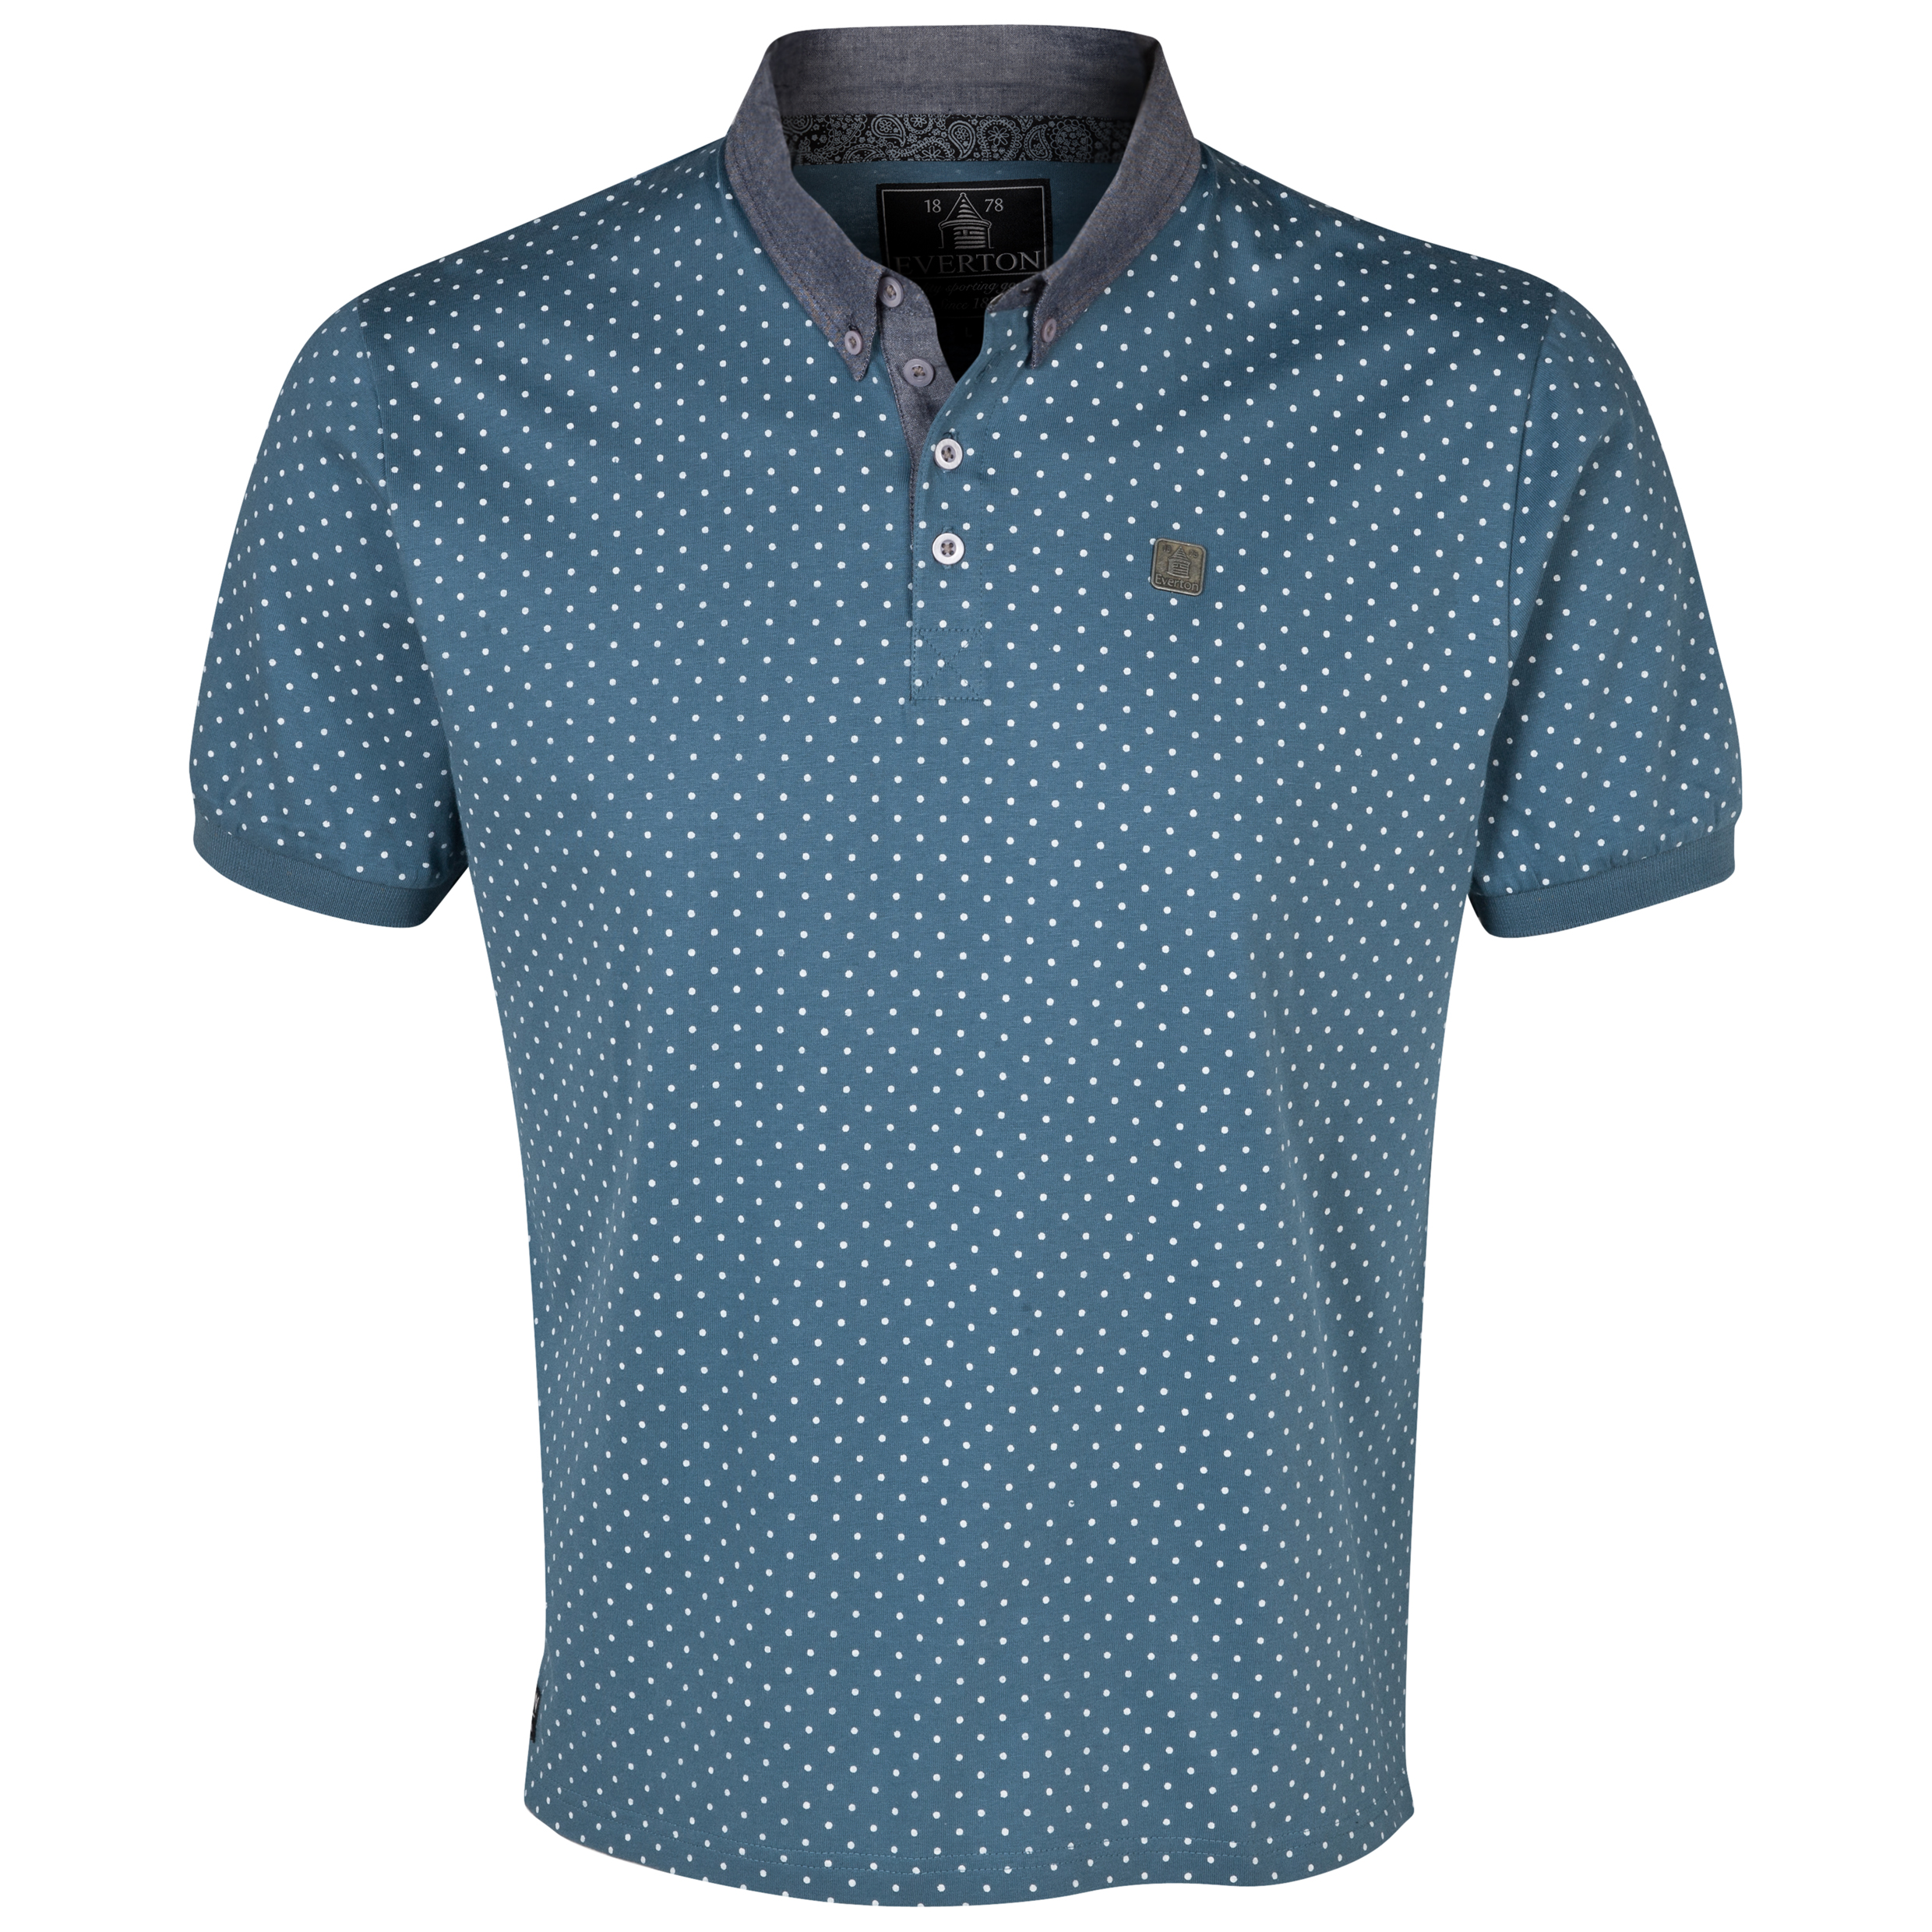 Everton Lexford Polo Shirt - Mens Charcoal